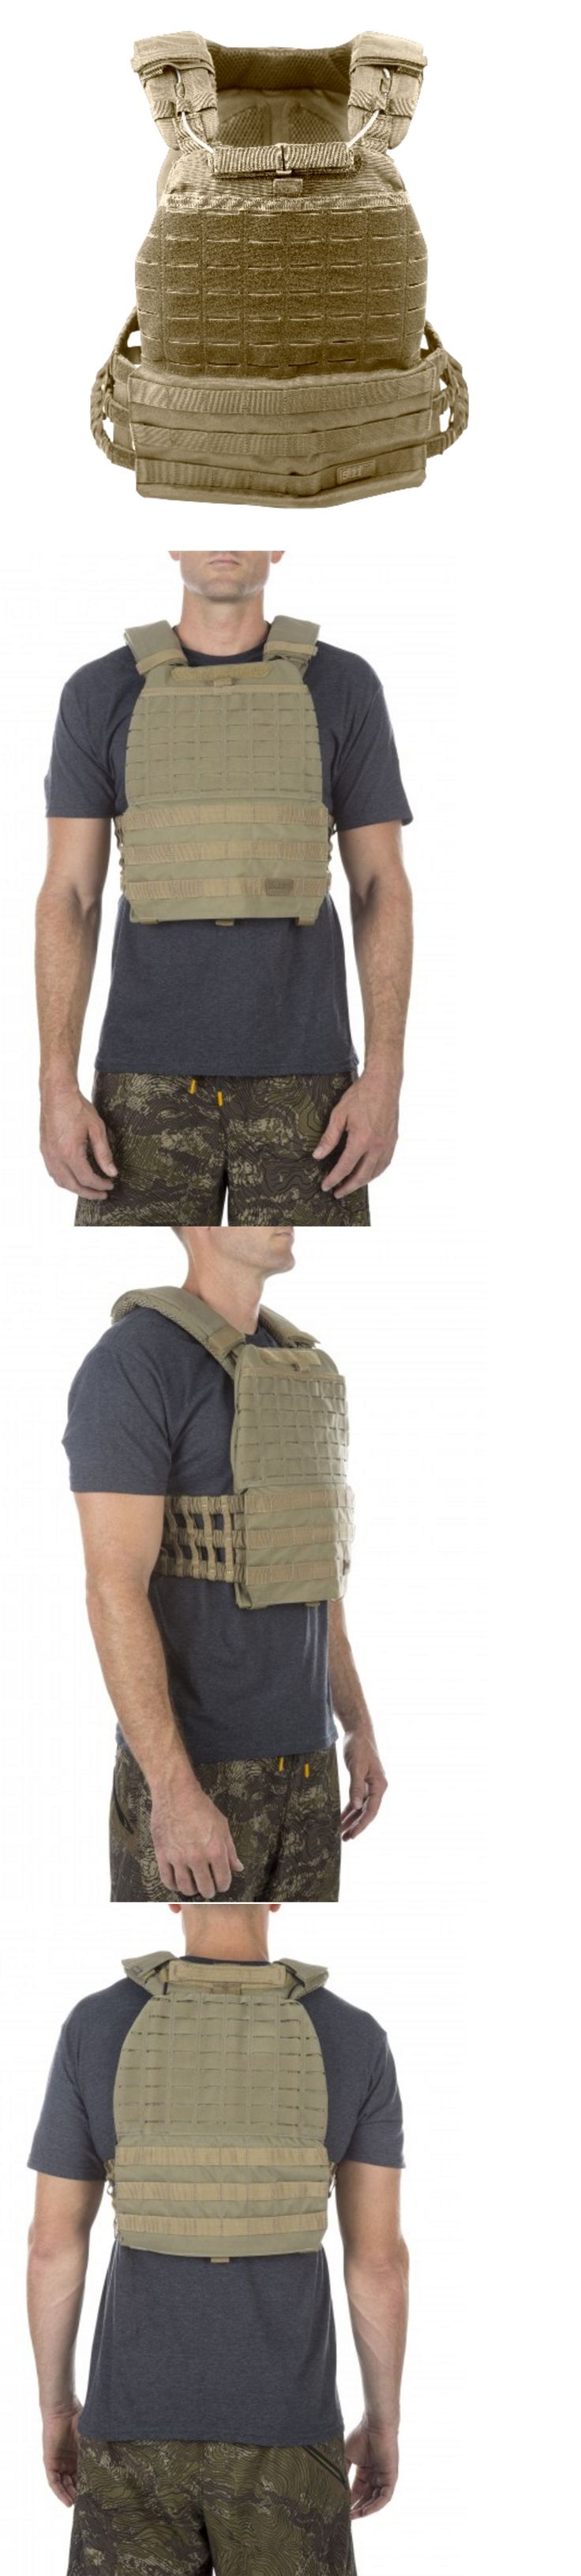 Chest Rigs and Tactical Vests 177891: 5.11 Tactical Tactec™ Plate Carrier 56100 / Sandstone 328 * New * BUY IT NOW ONLY: $189.99